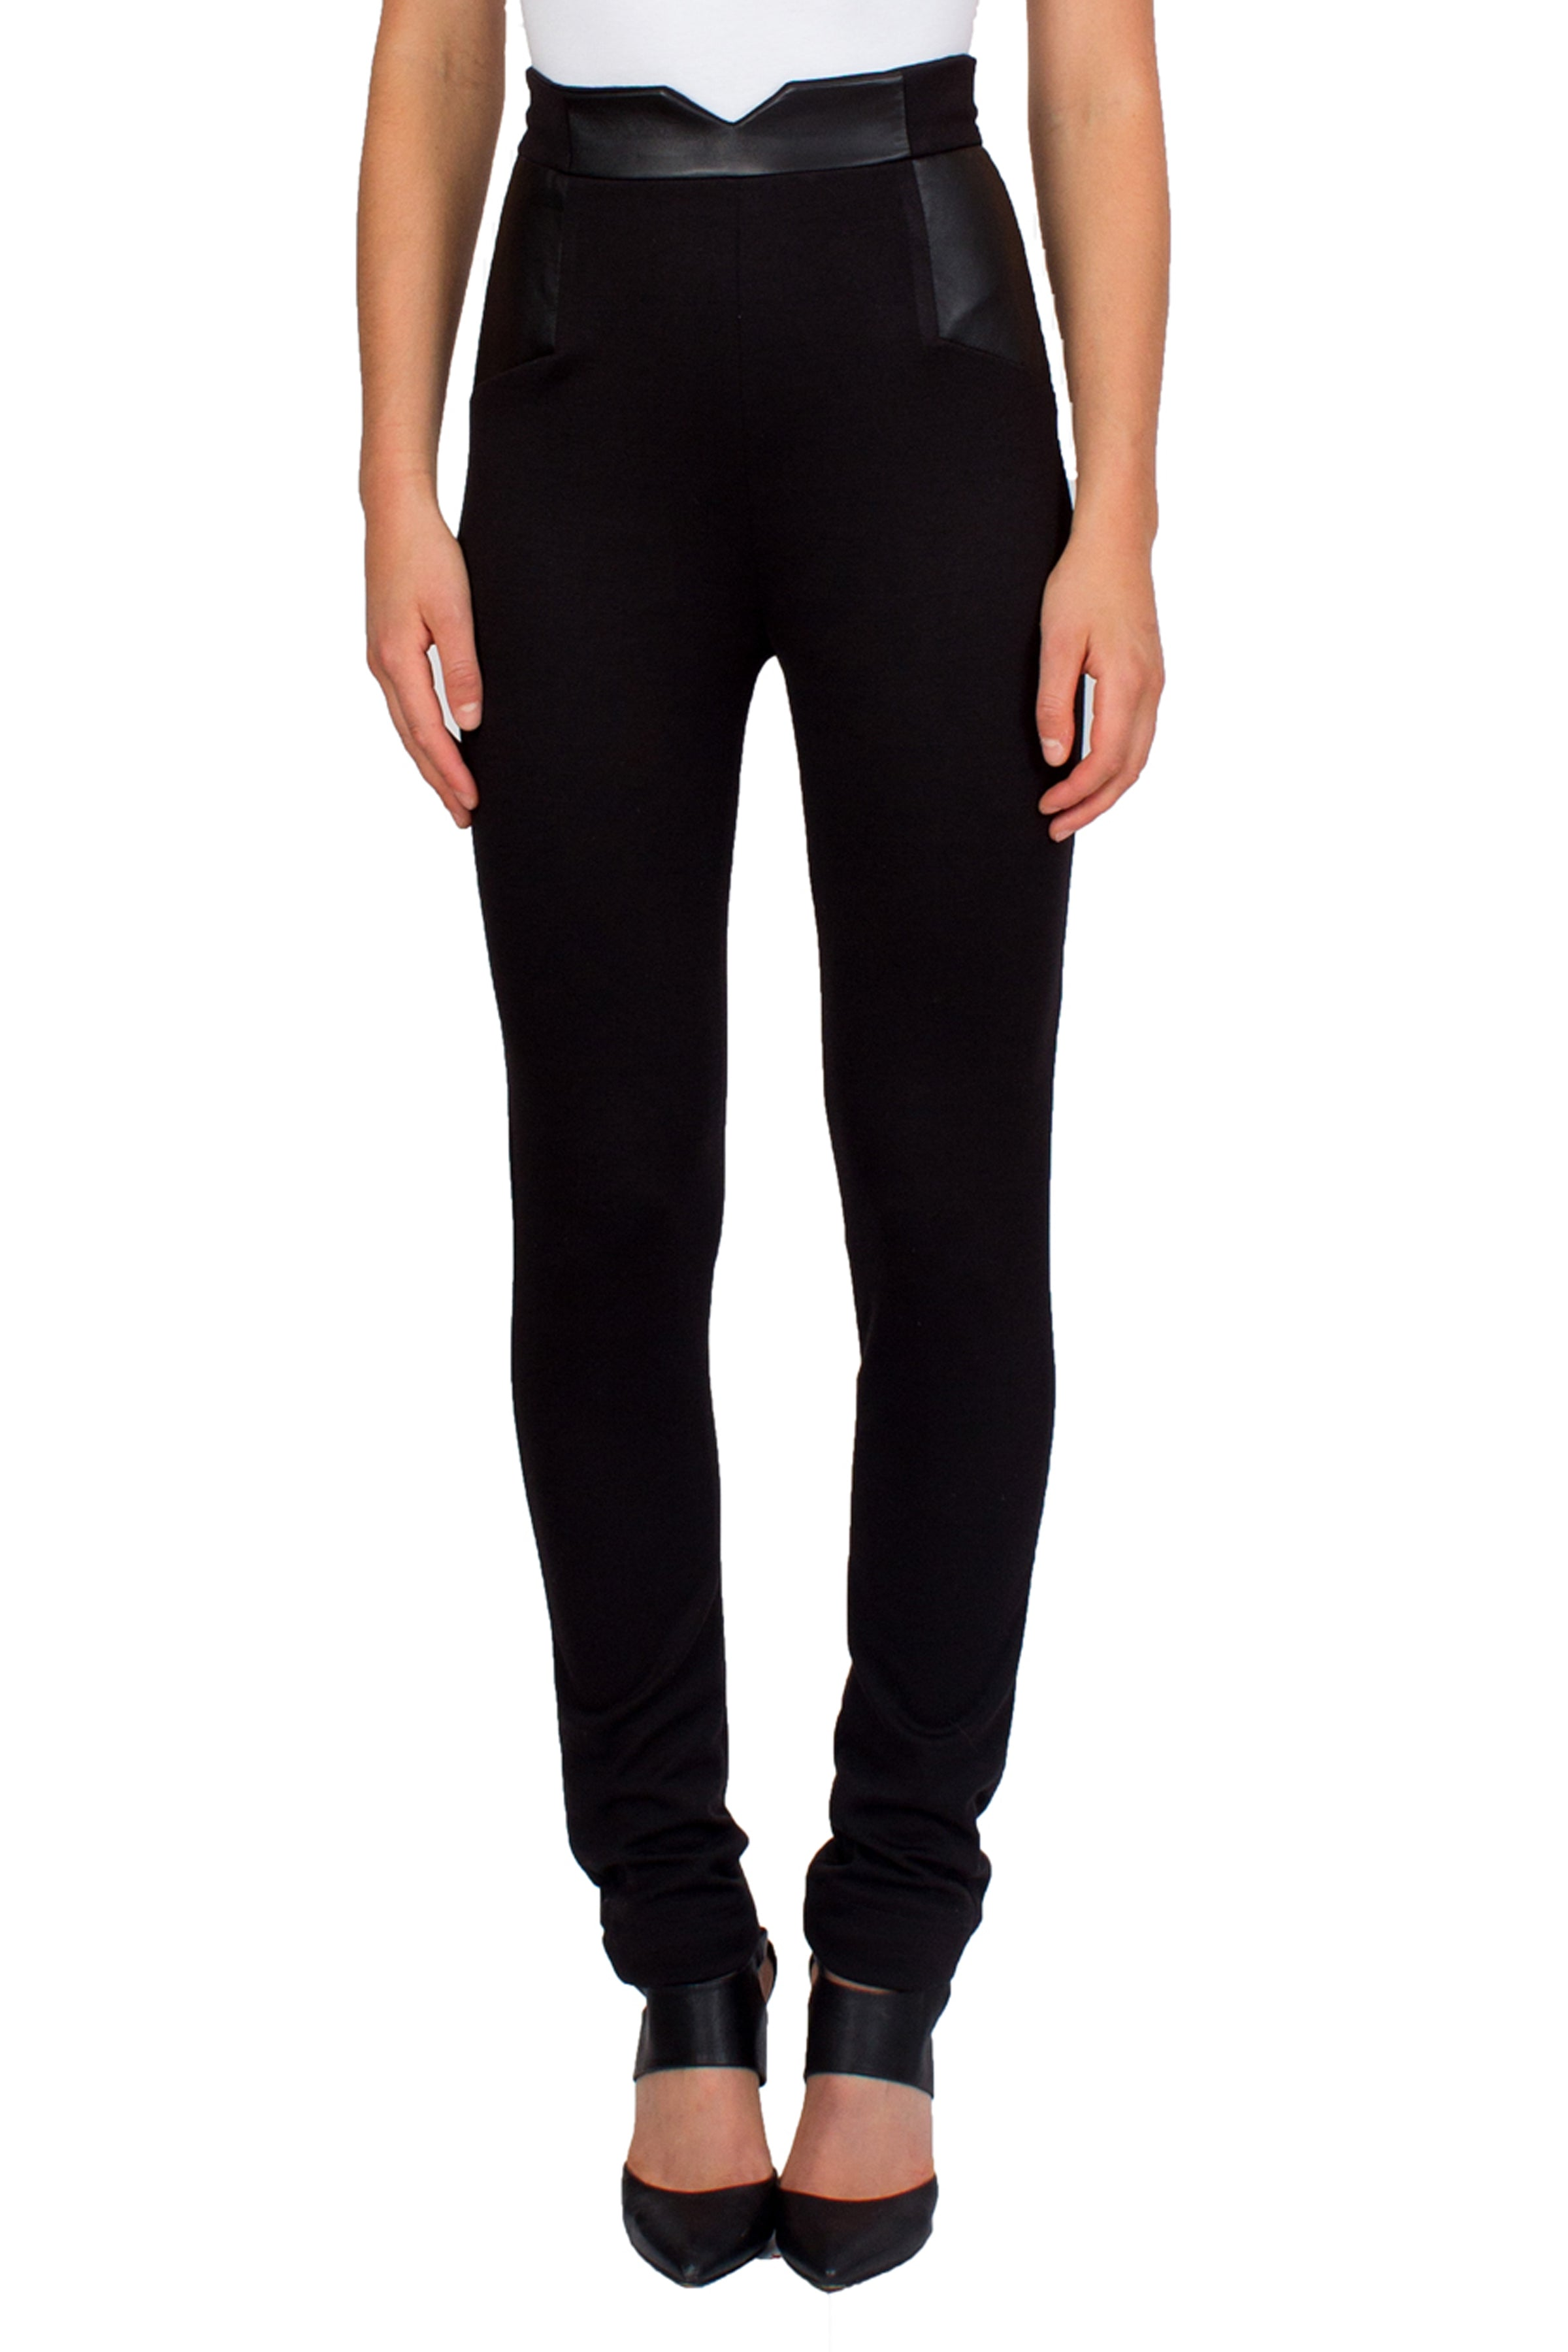 High Waisted Black Pants With Leather Insets - Tetiana K - 2